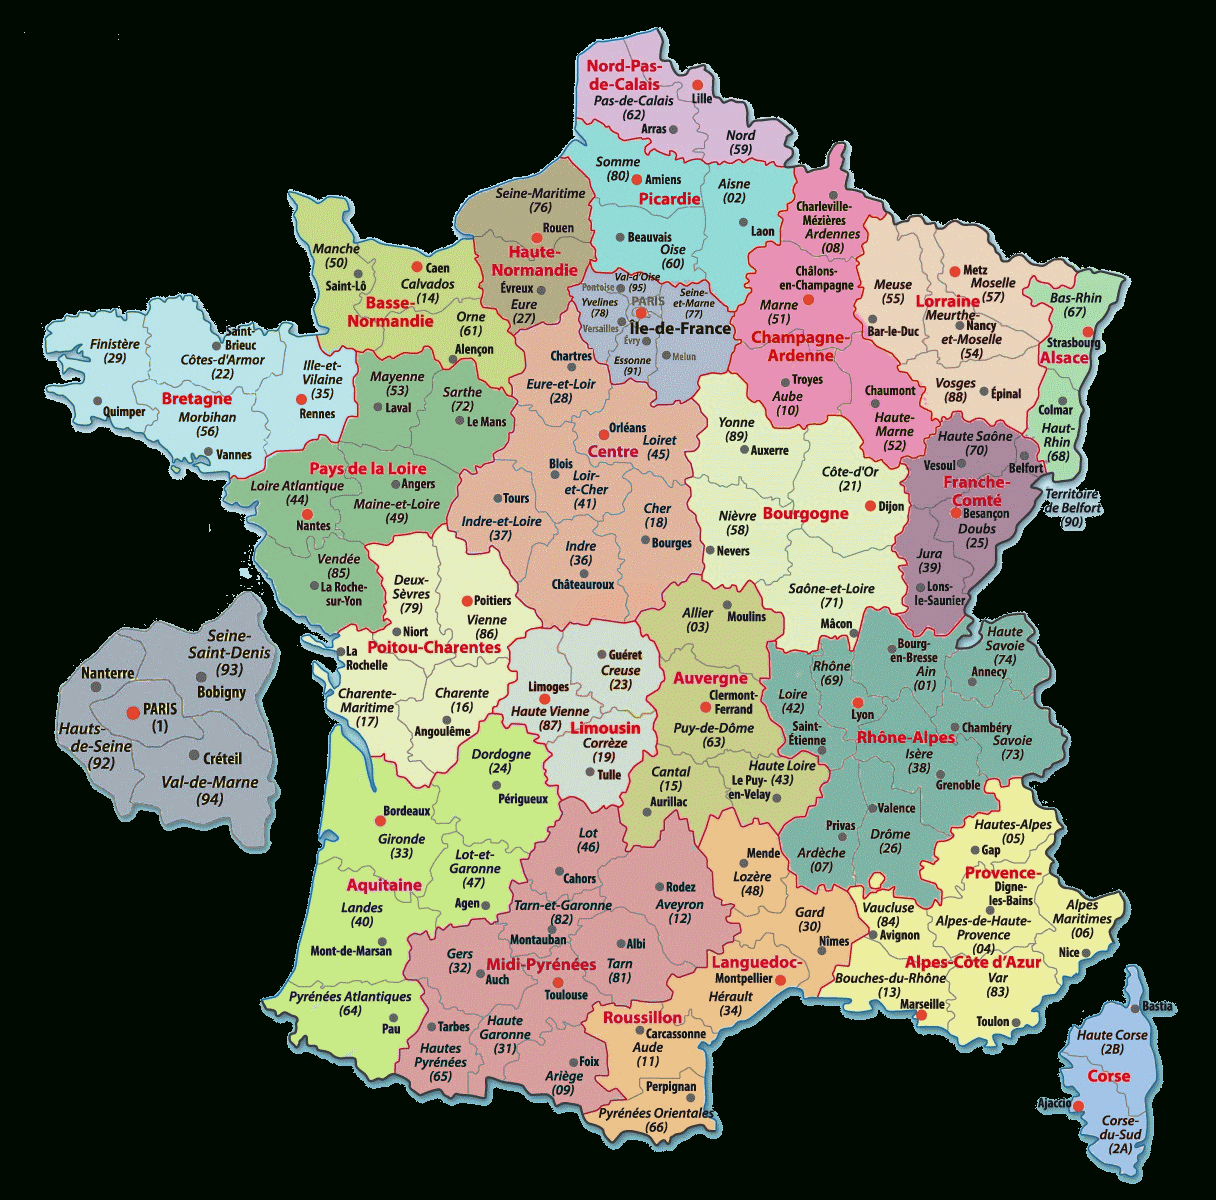 Carte De France Departements : Carte Des Départements De France tout Carte De La France Avec Ville